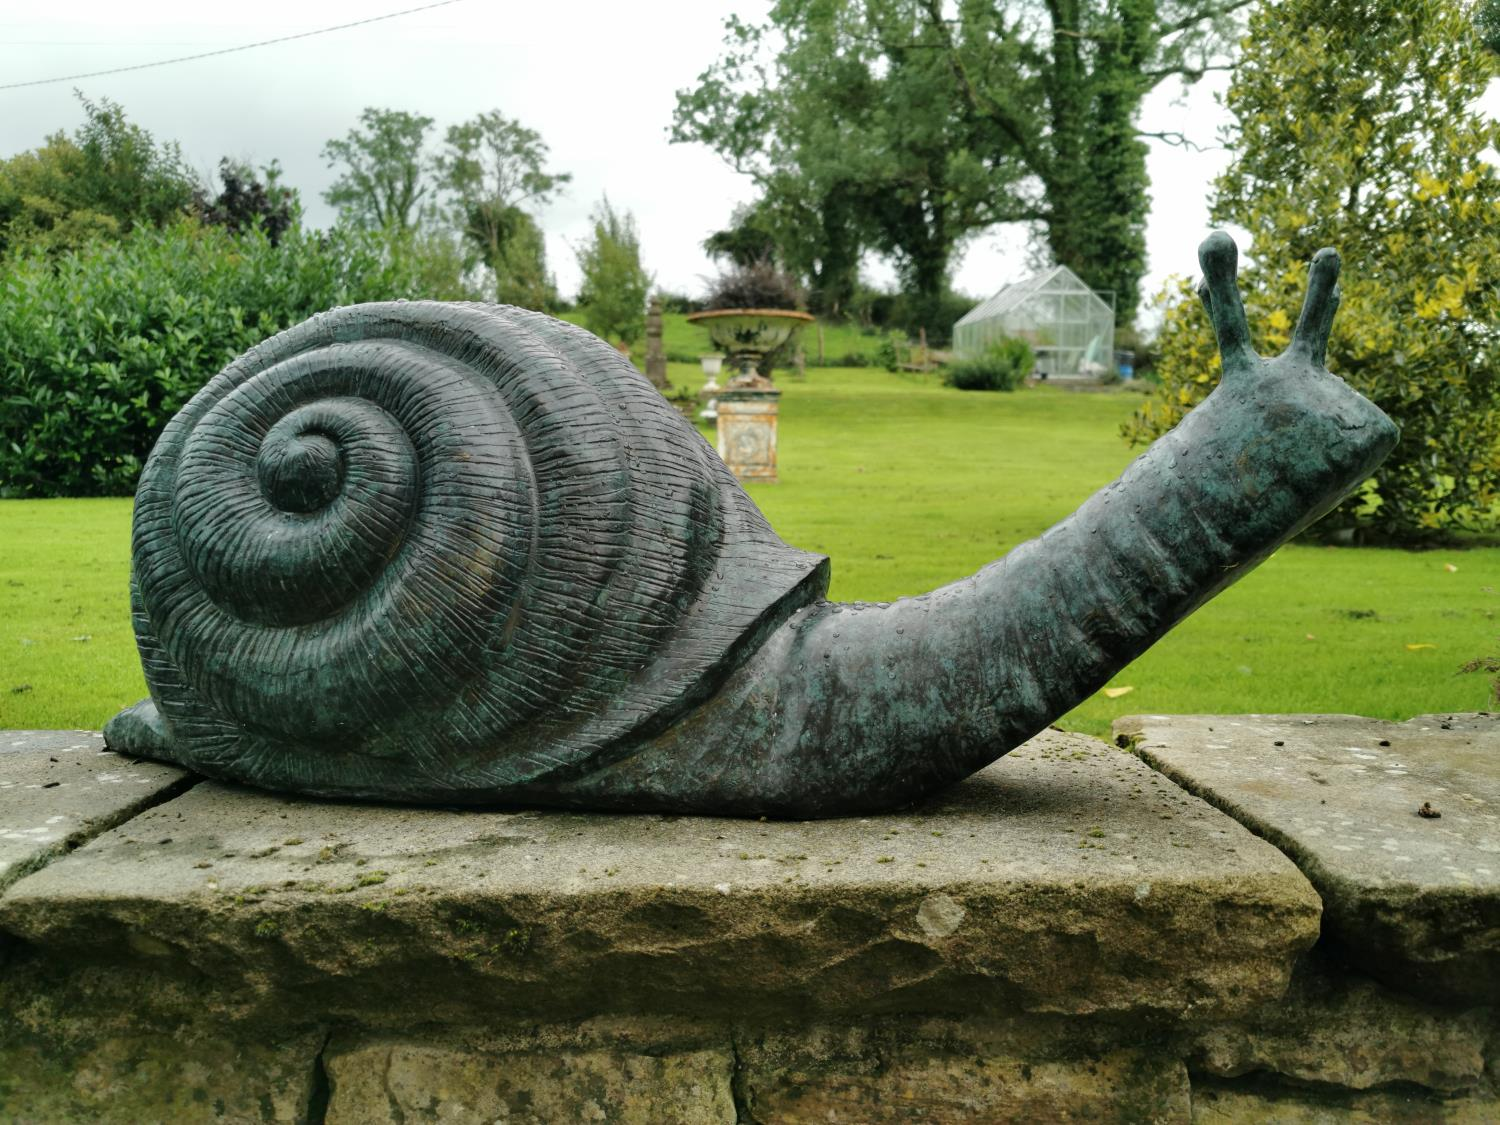 Exceptional quality bronze model of a Snail.